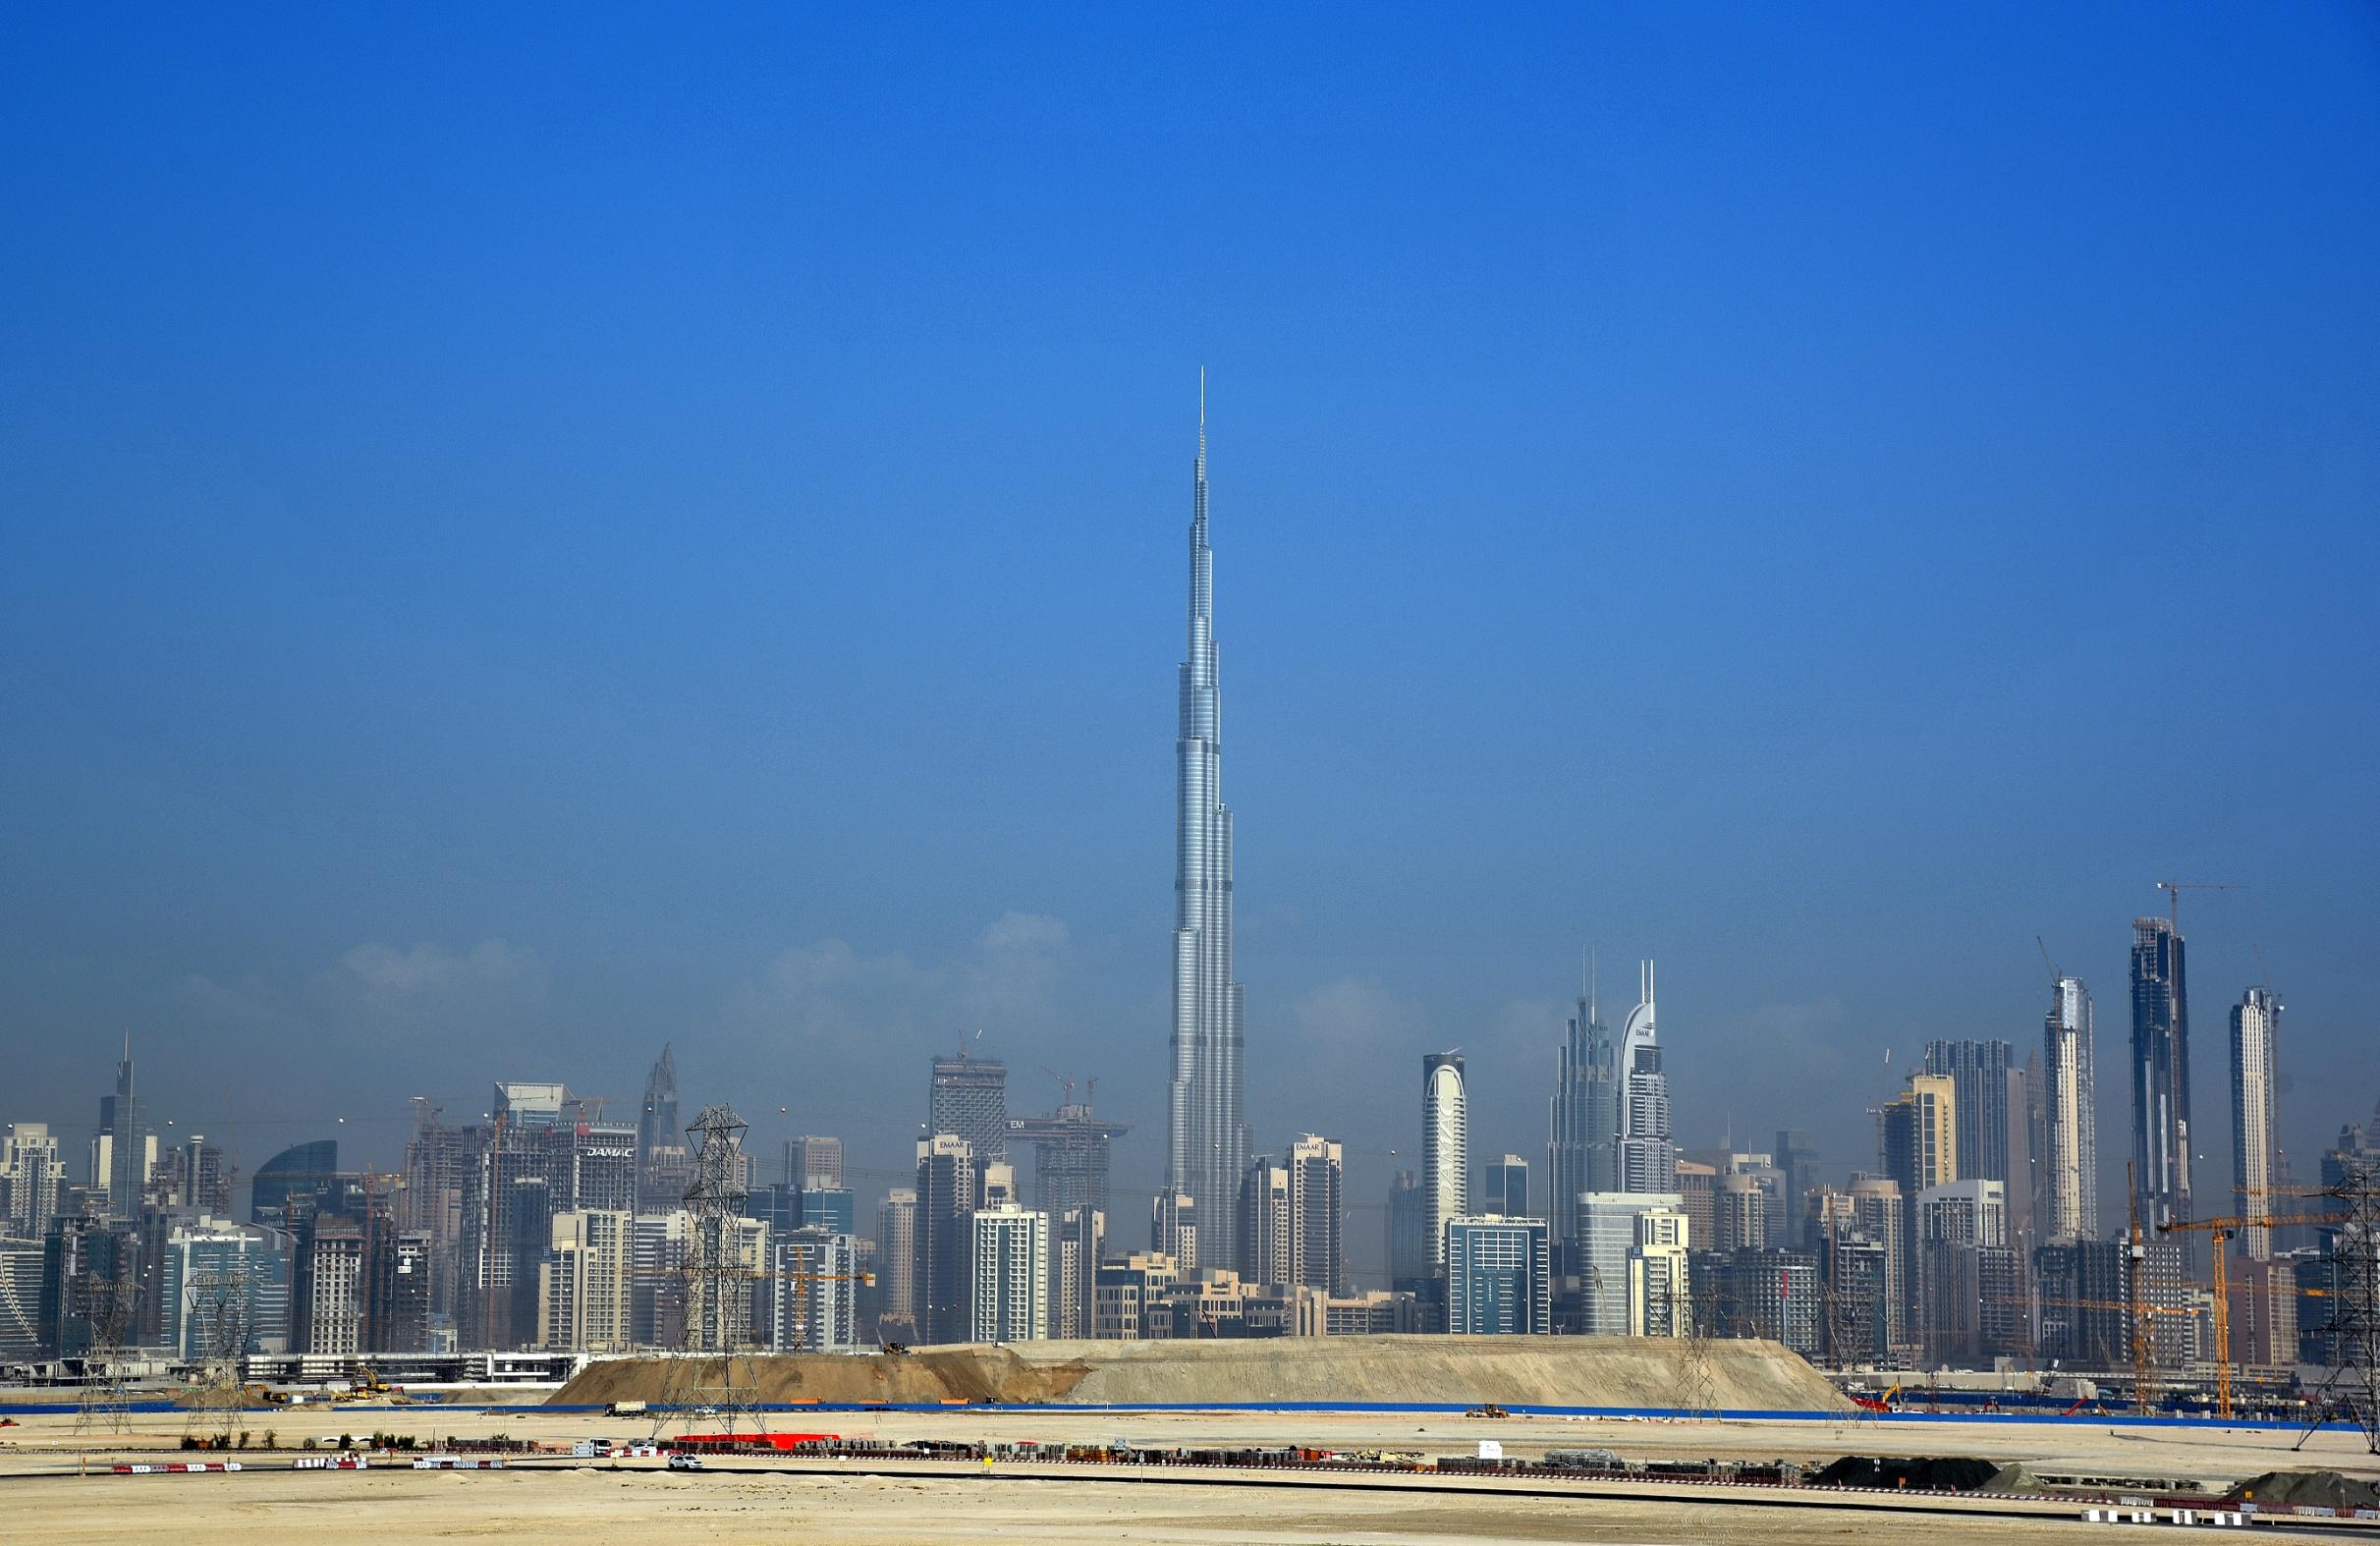 Dubai's Burj Khalifa: A look inside the